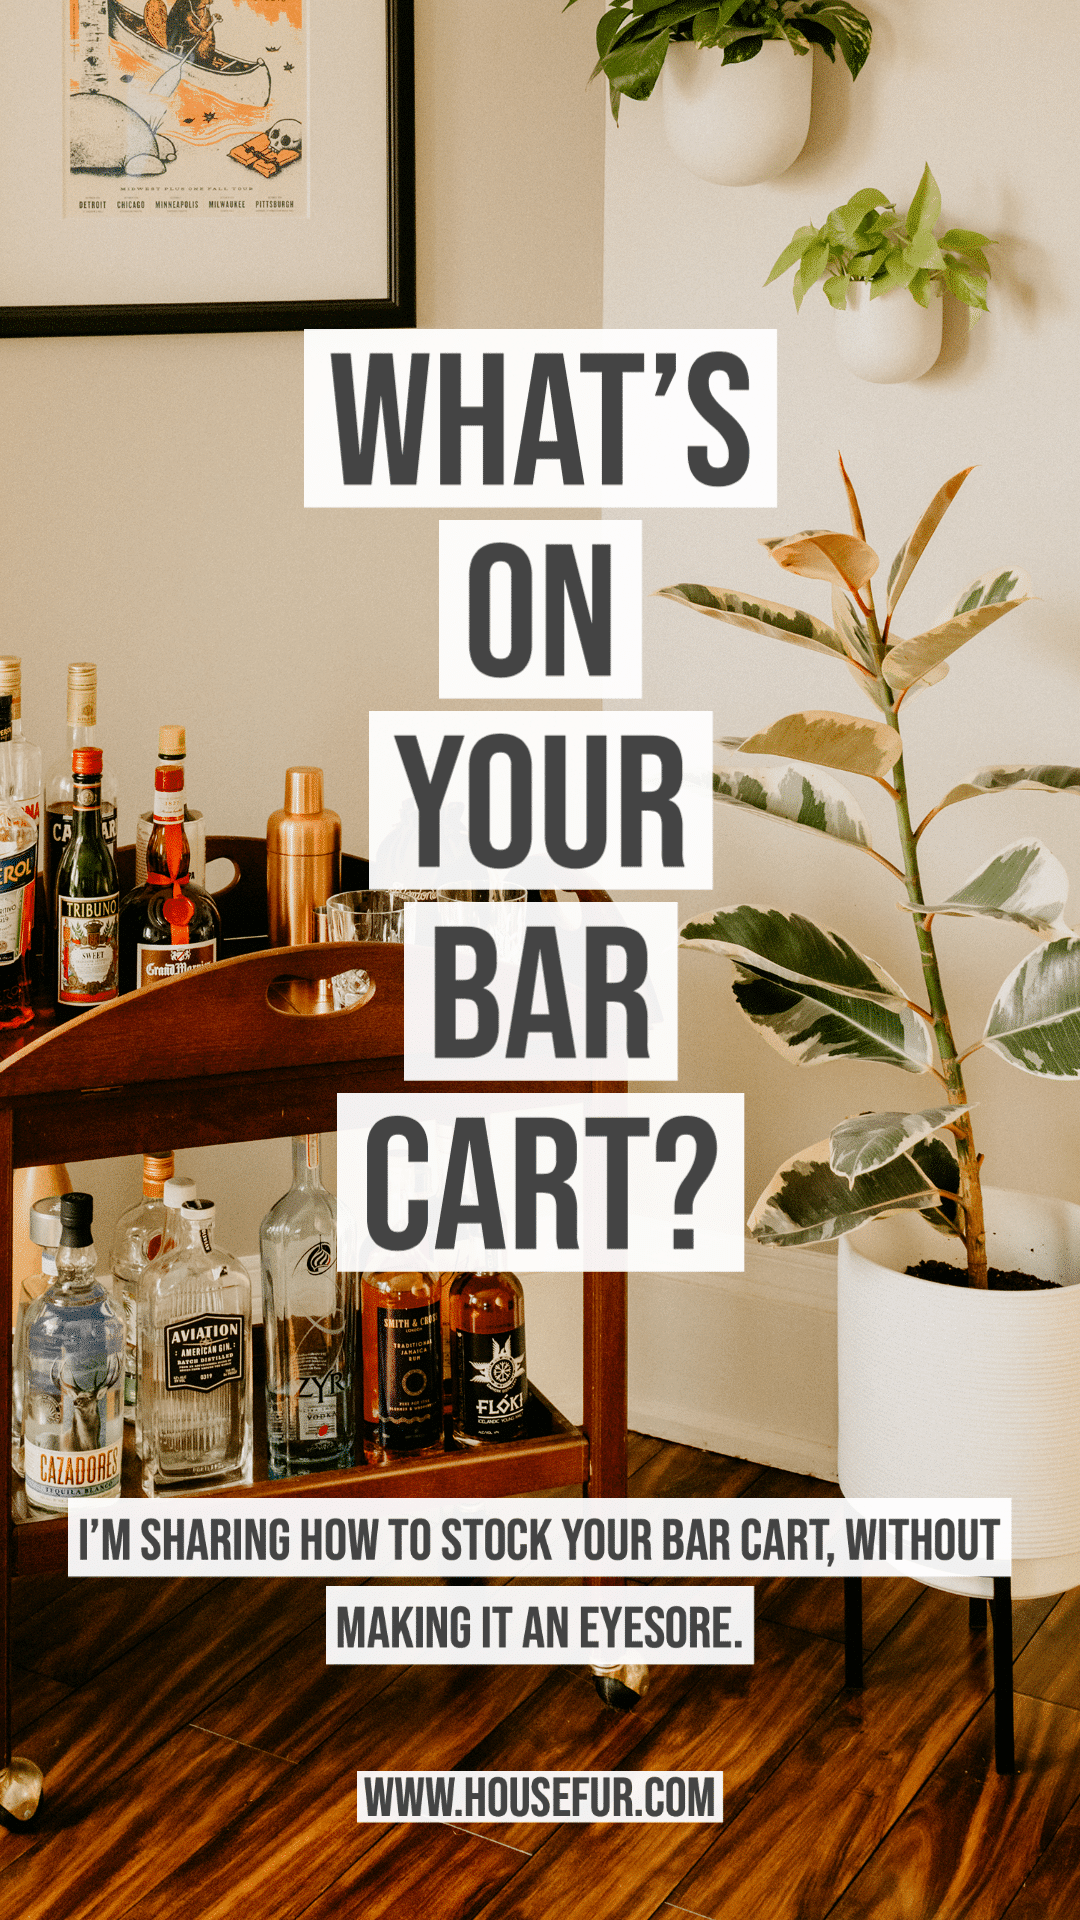 What's On Your Bar Cart?